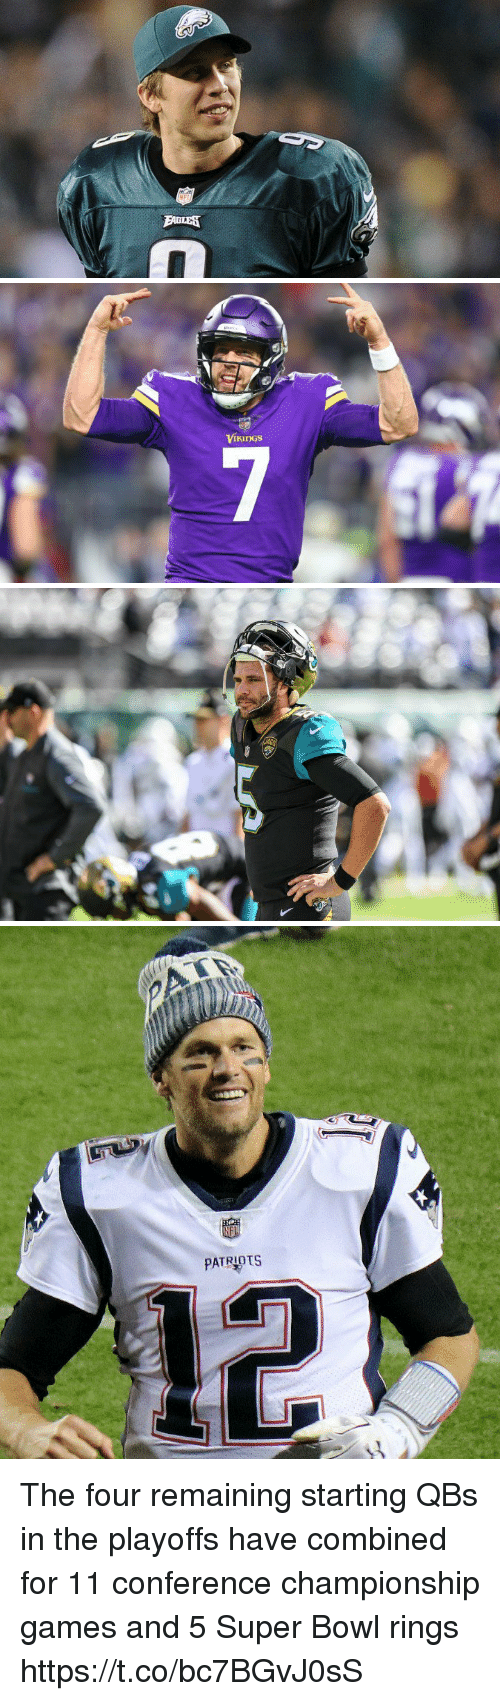 Memes, Patriotic, and Super Bowl: PATRIOTS The four remaining starting QBs in the playoffs have combined for 11 conference championship games and 5 Super Bowl rings https://t.co/bc7BGvJ0sS